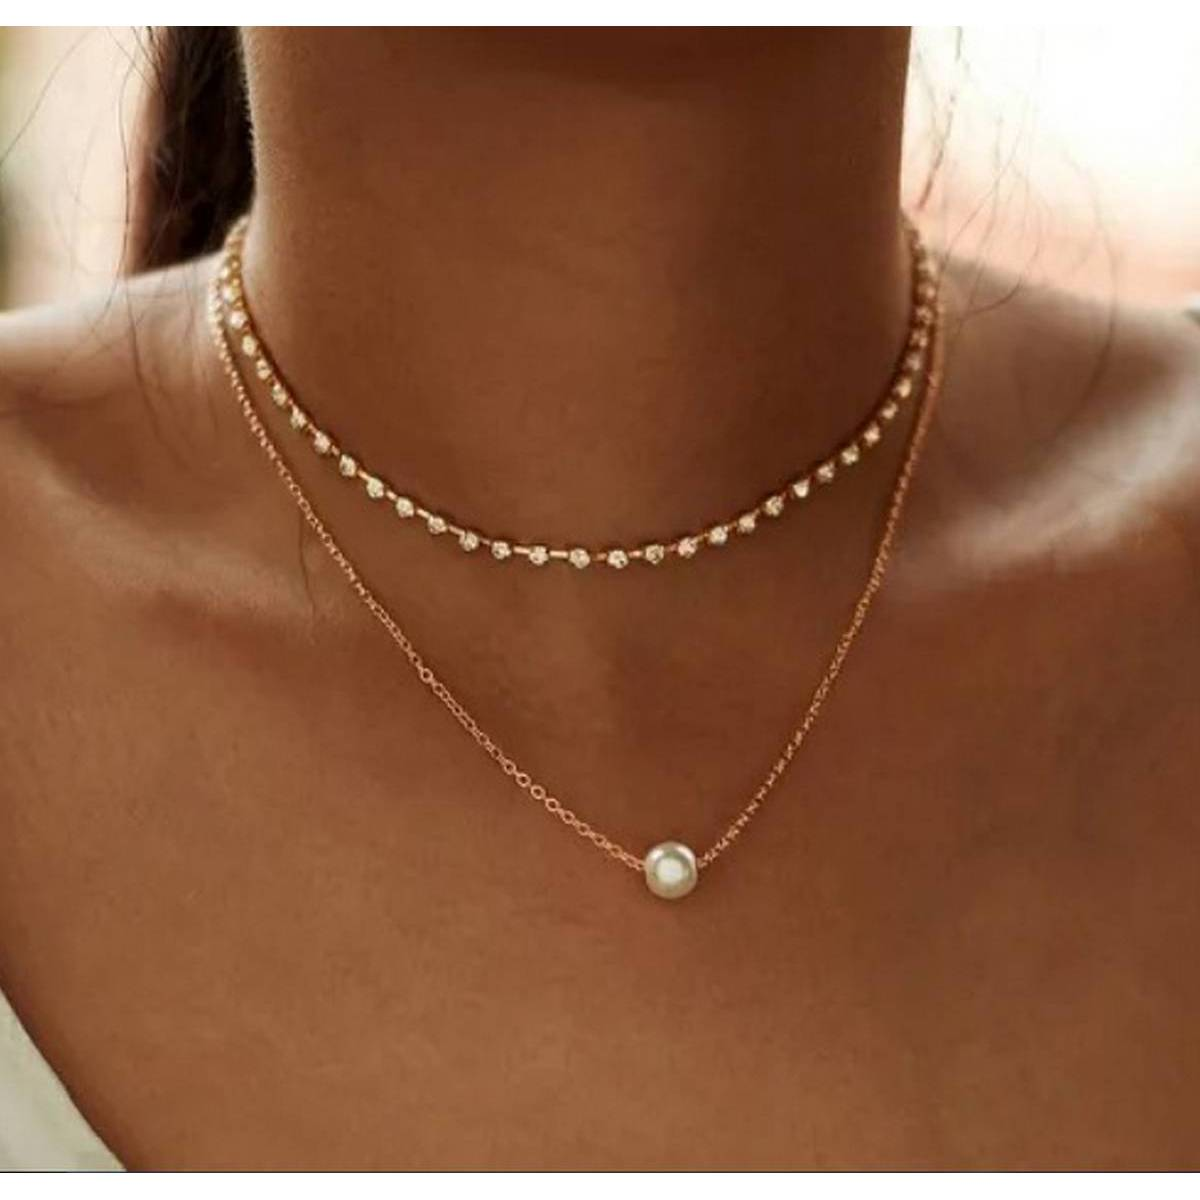 Exquisite Multi-layer Pearl Pendant Charm Choker Chain Necklace For Girls & Womens